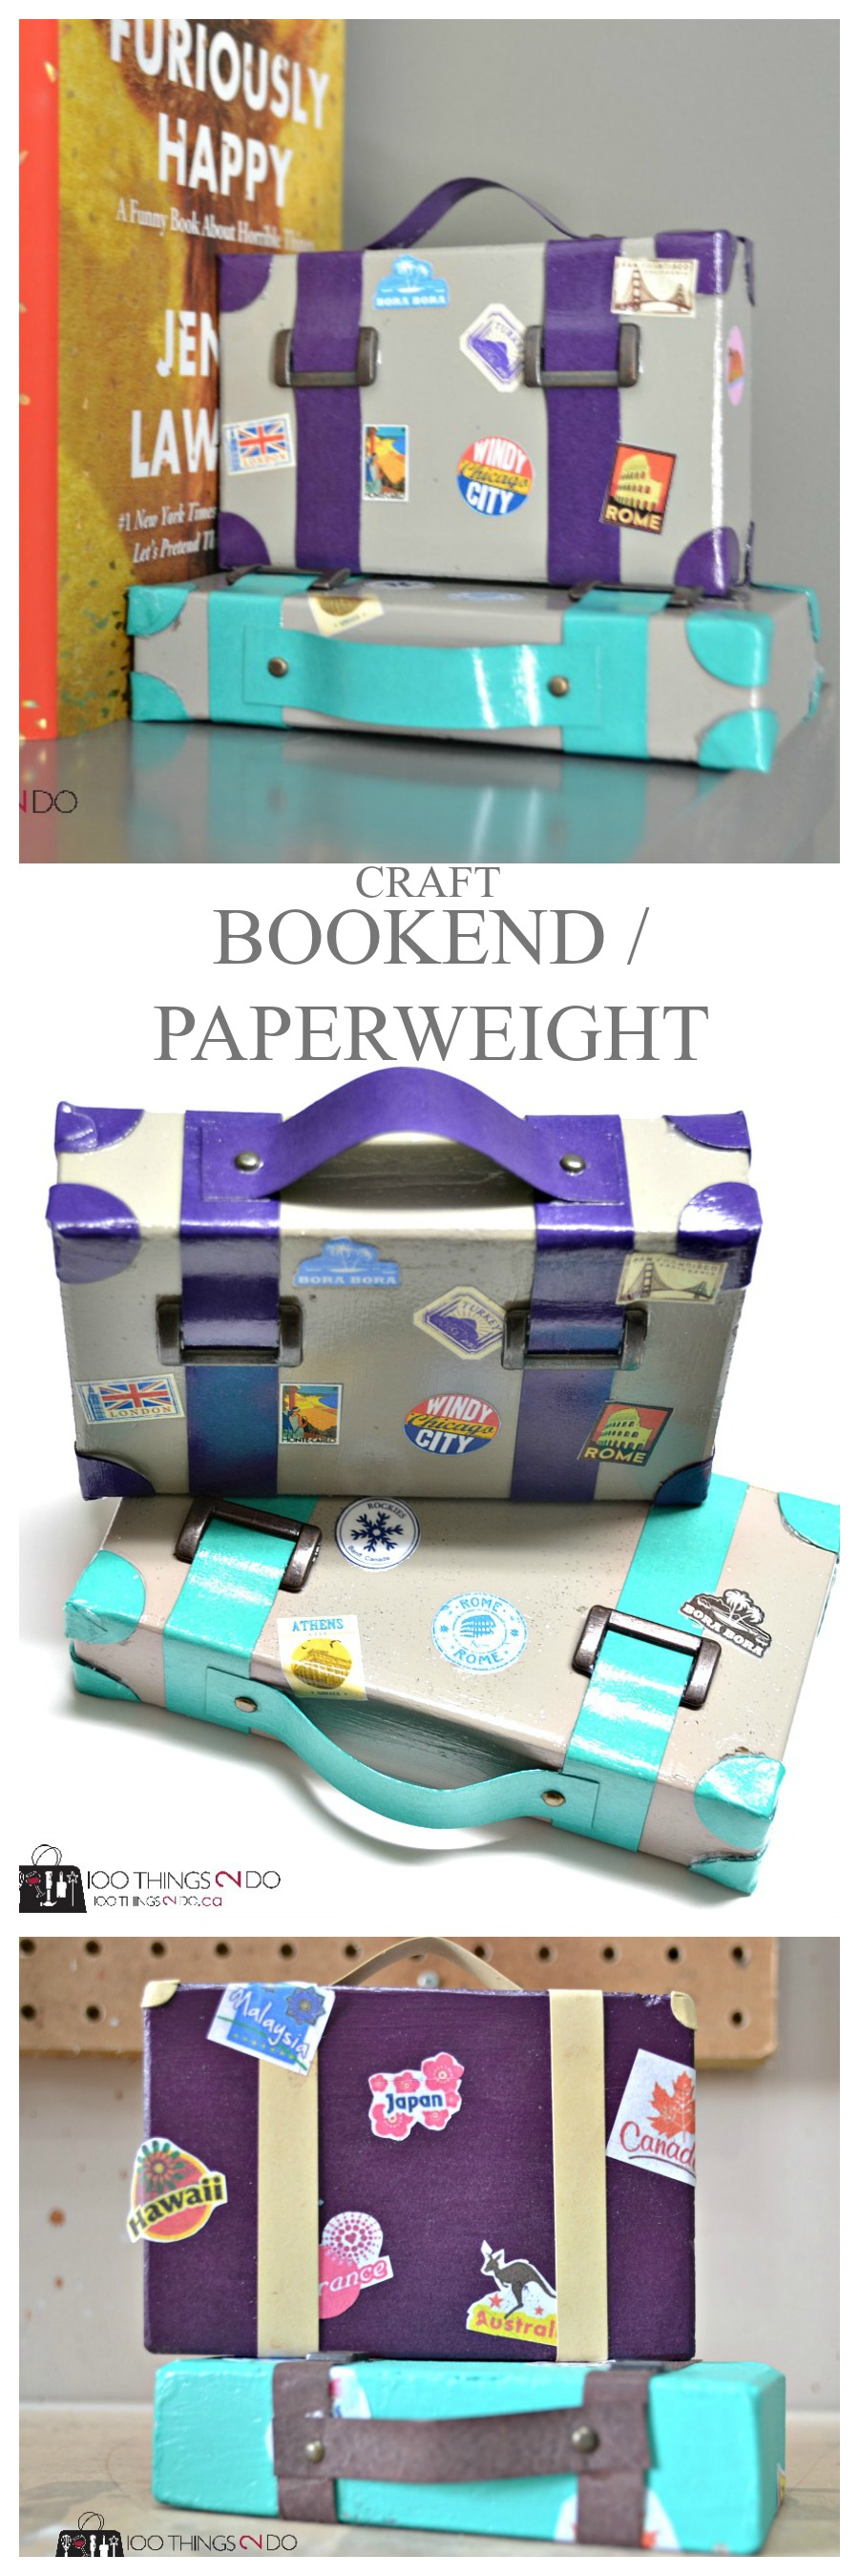 Suitcase Paperweights - P